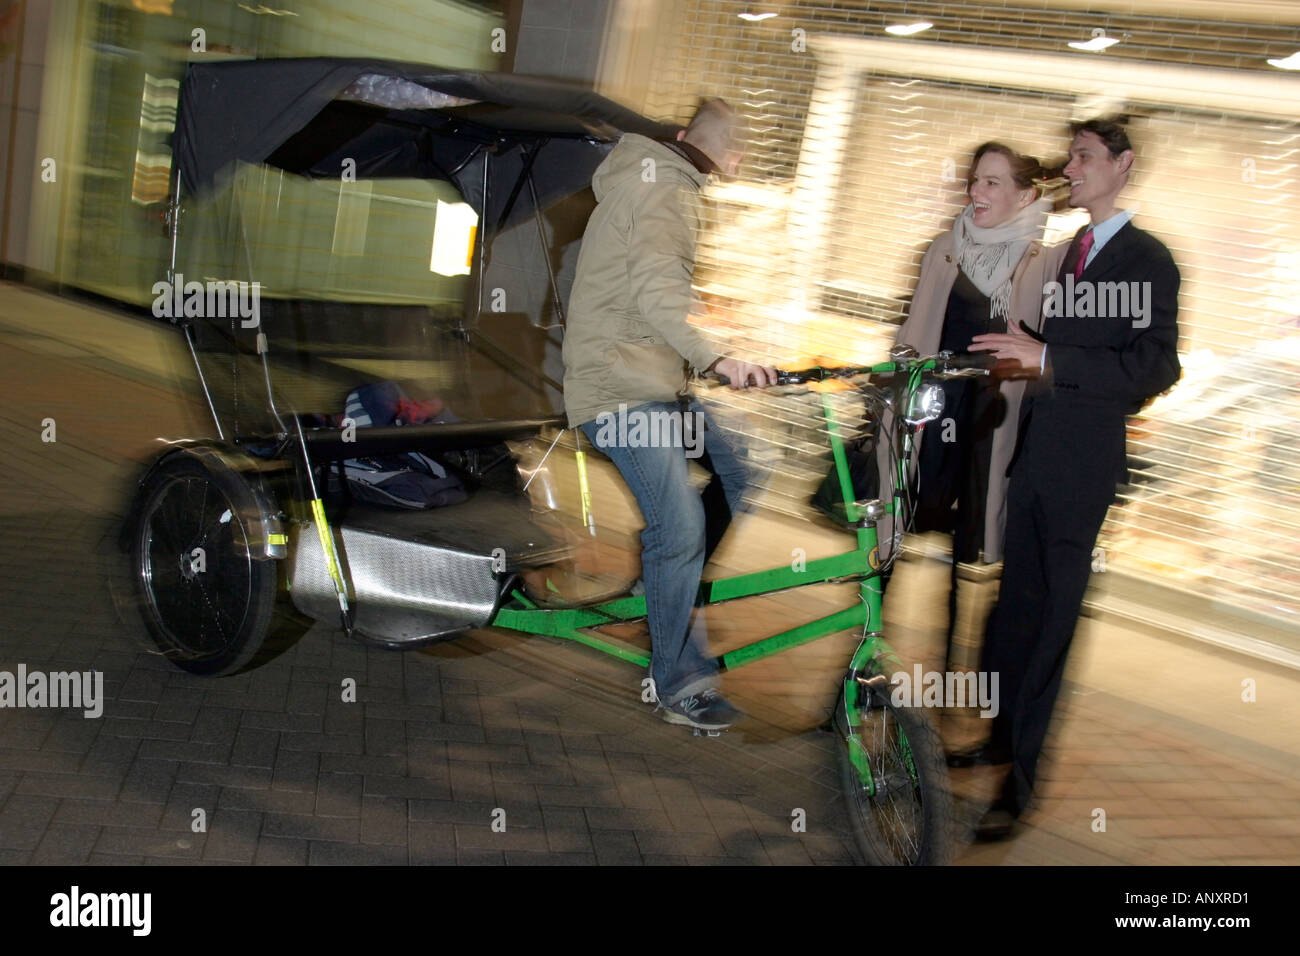 Couple on a Friday Night out in the West end of London Model released rickshaw - Stock Image